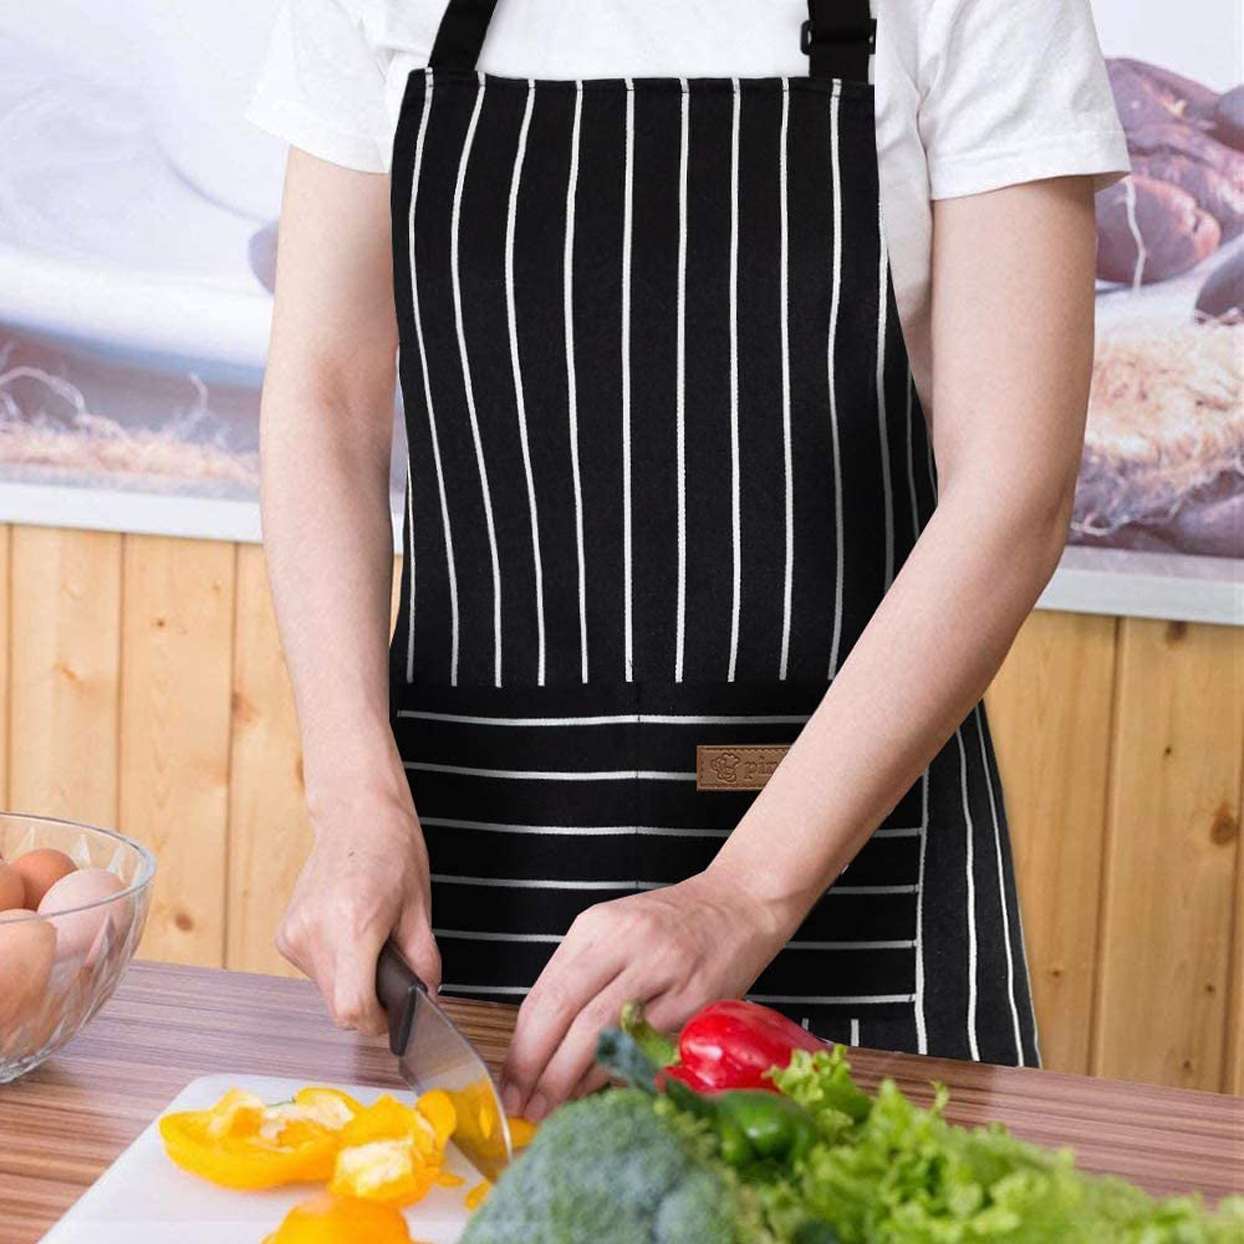 Person wearing a striped apron while cutting vegetables